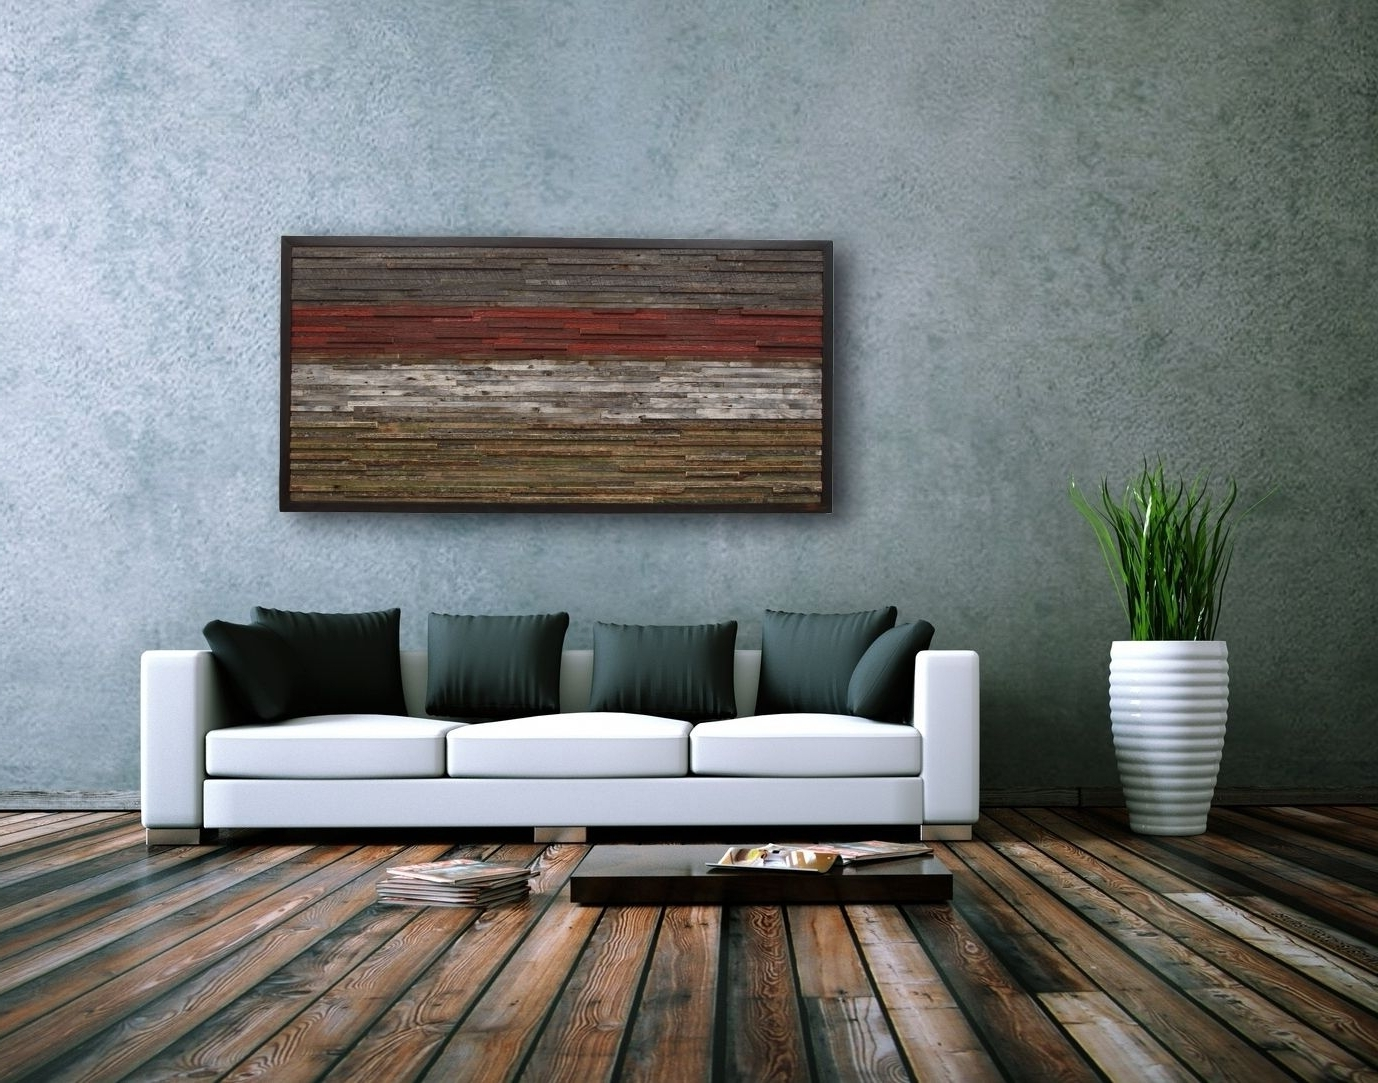 Fashionable Large Rustic Wall Art Inside Astonishing Strikingly Ideas Large Rustic Wall Art With Metal (View 14 of 20)